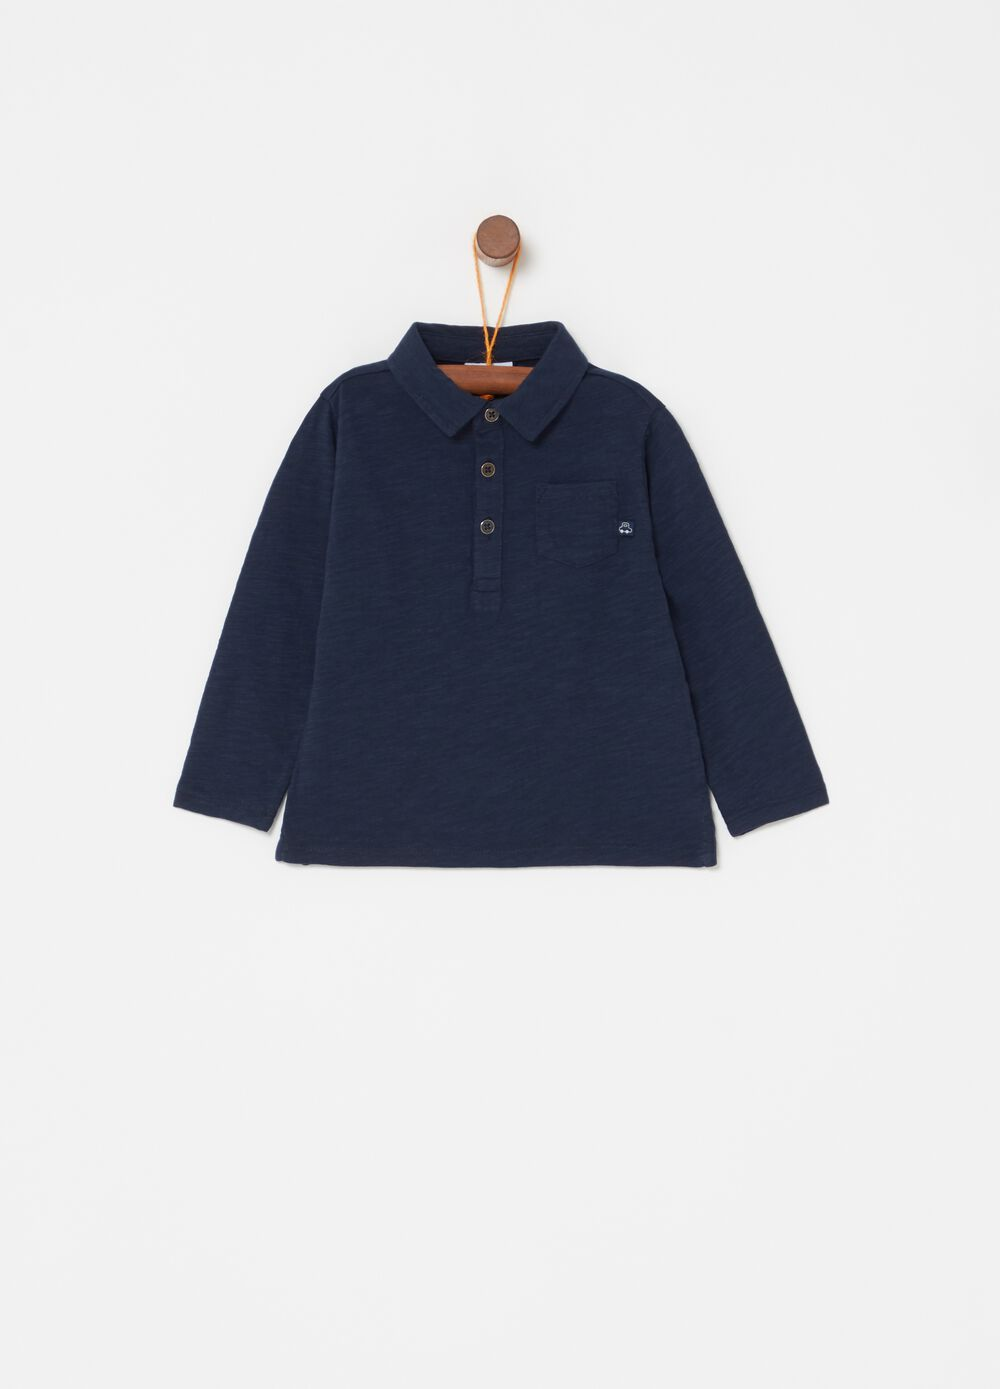 Iridescent jersey polo shirt with long sleeves